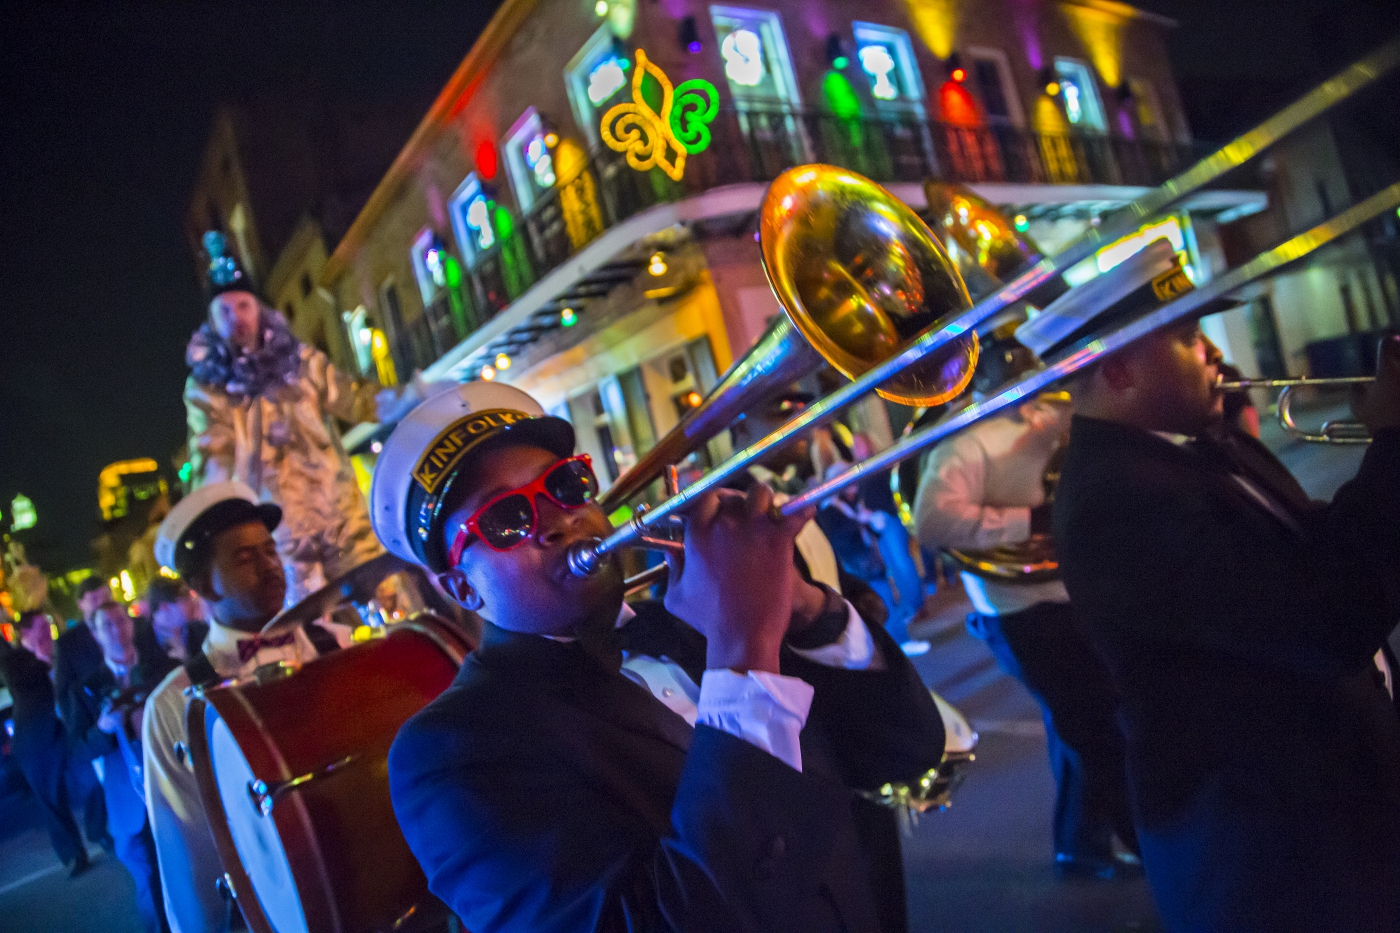 Brass band in downtown New Orleans.